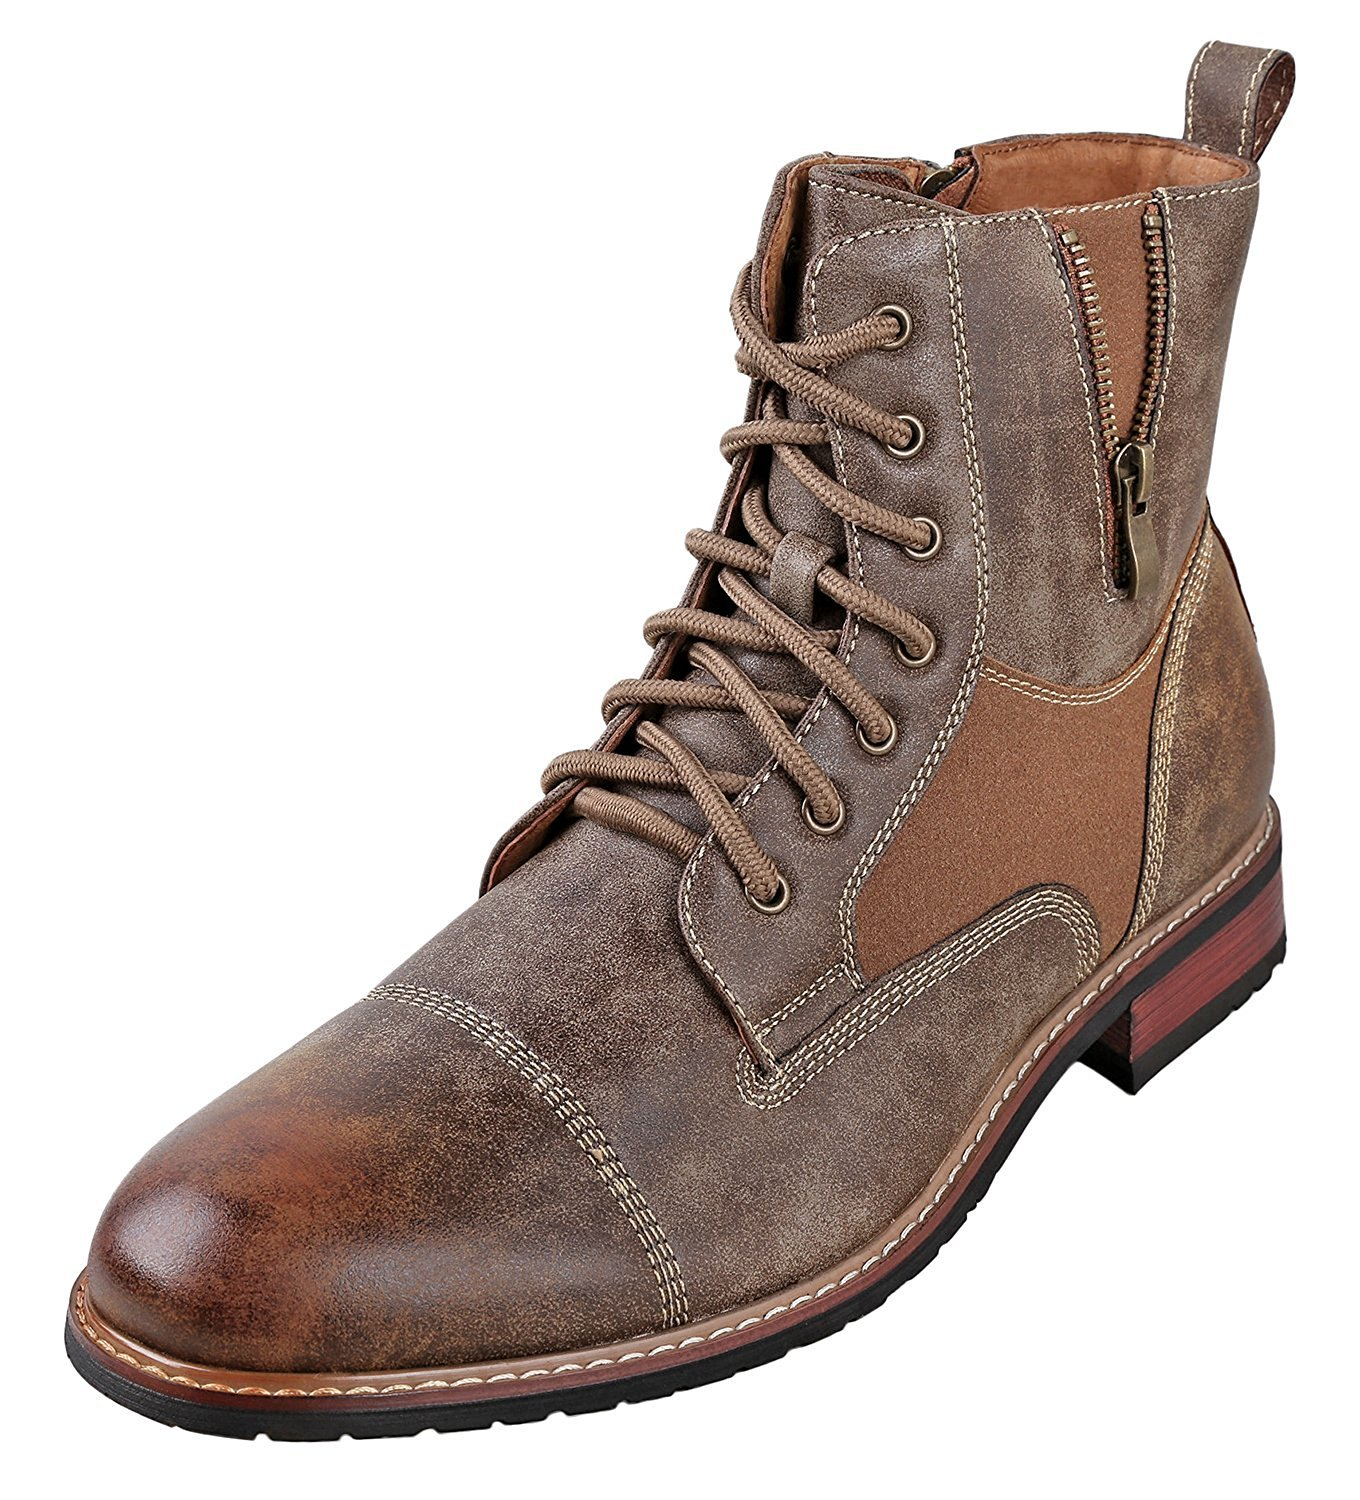 Ferro Aldo Andy Mens Ankle Boots | Combat | Lace Up | Fashion | Casual | Winter | Brown 12 by Ferro Aldo